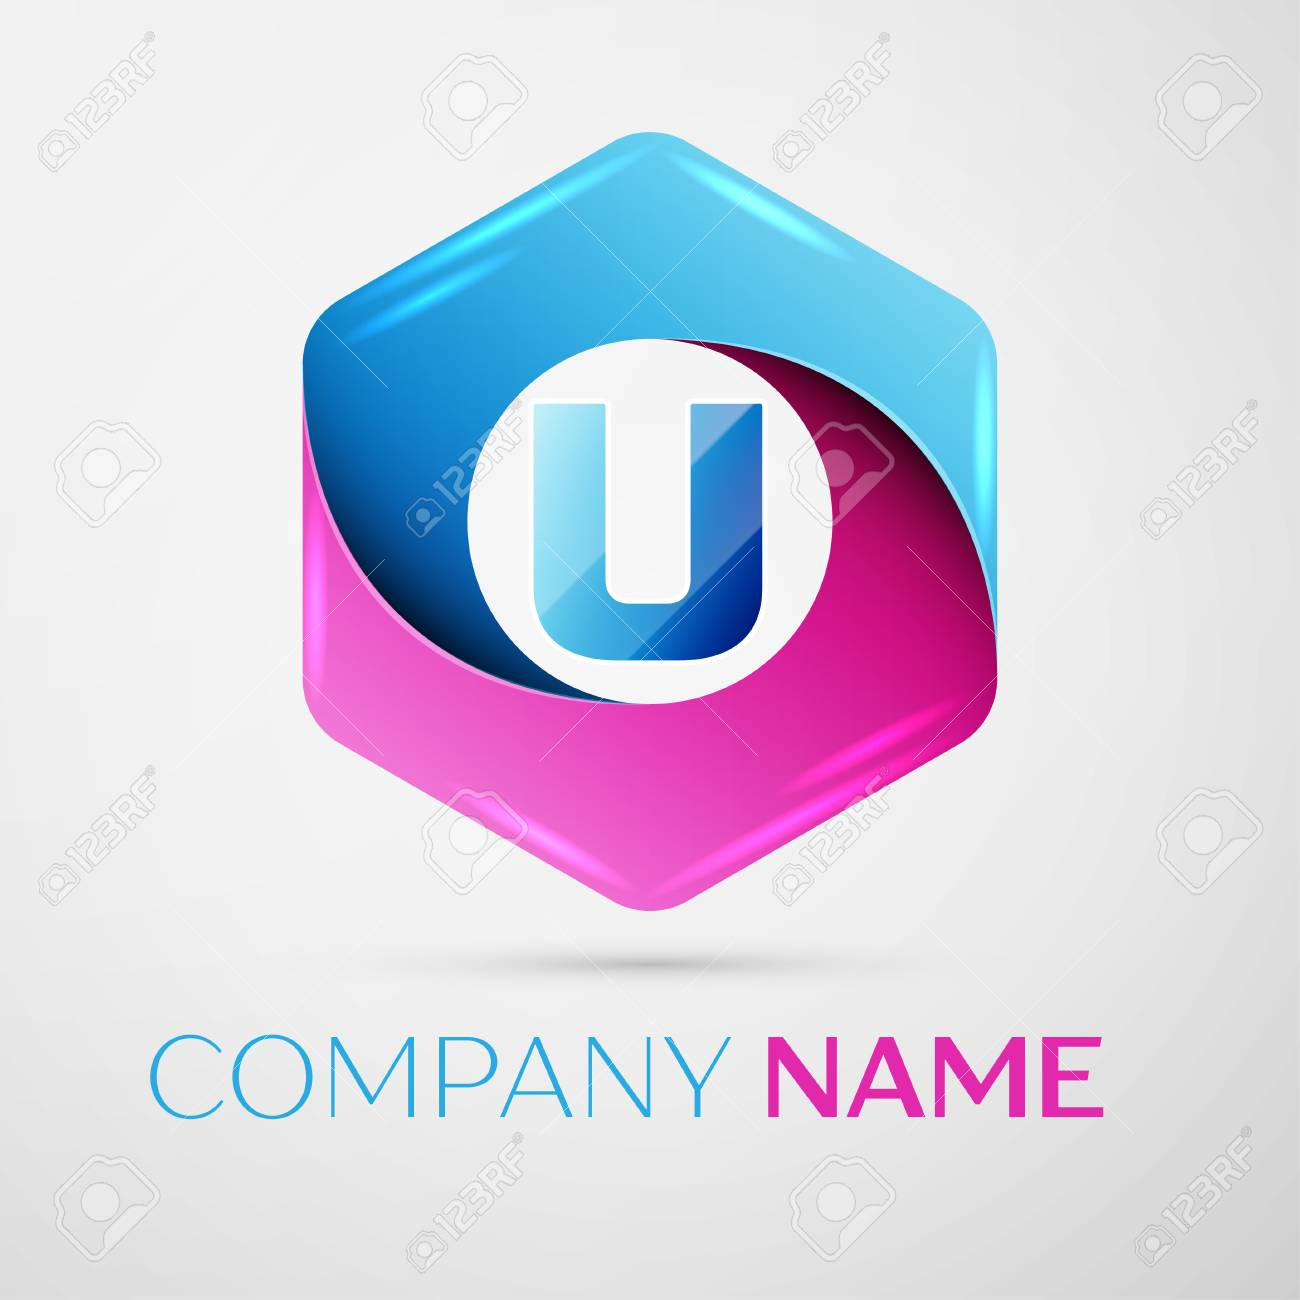 Letter U vector logo symbol in the colorful hexagonal on grey background. Vector template for your design - 67516205